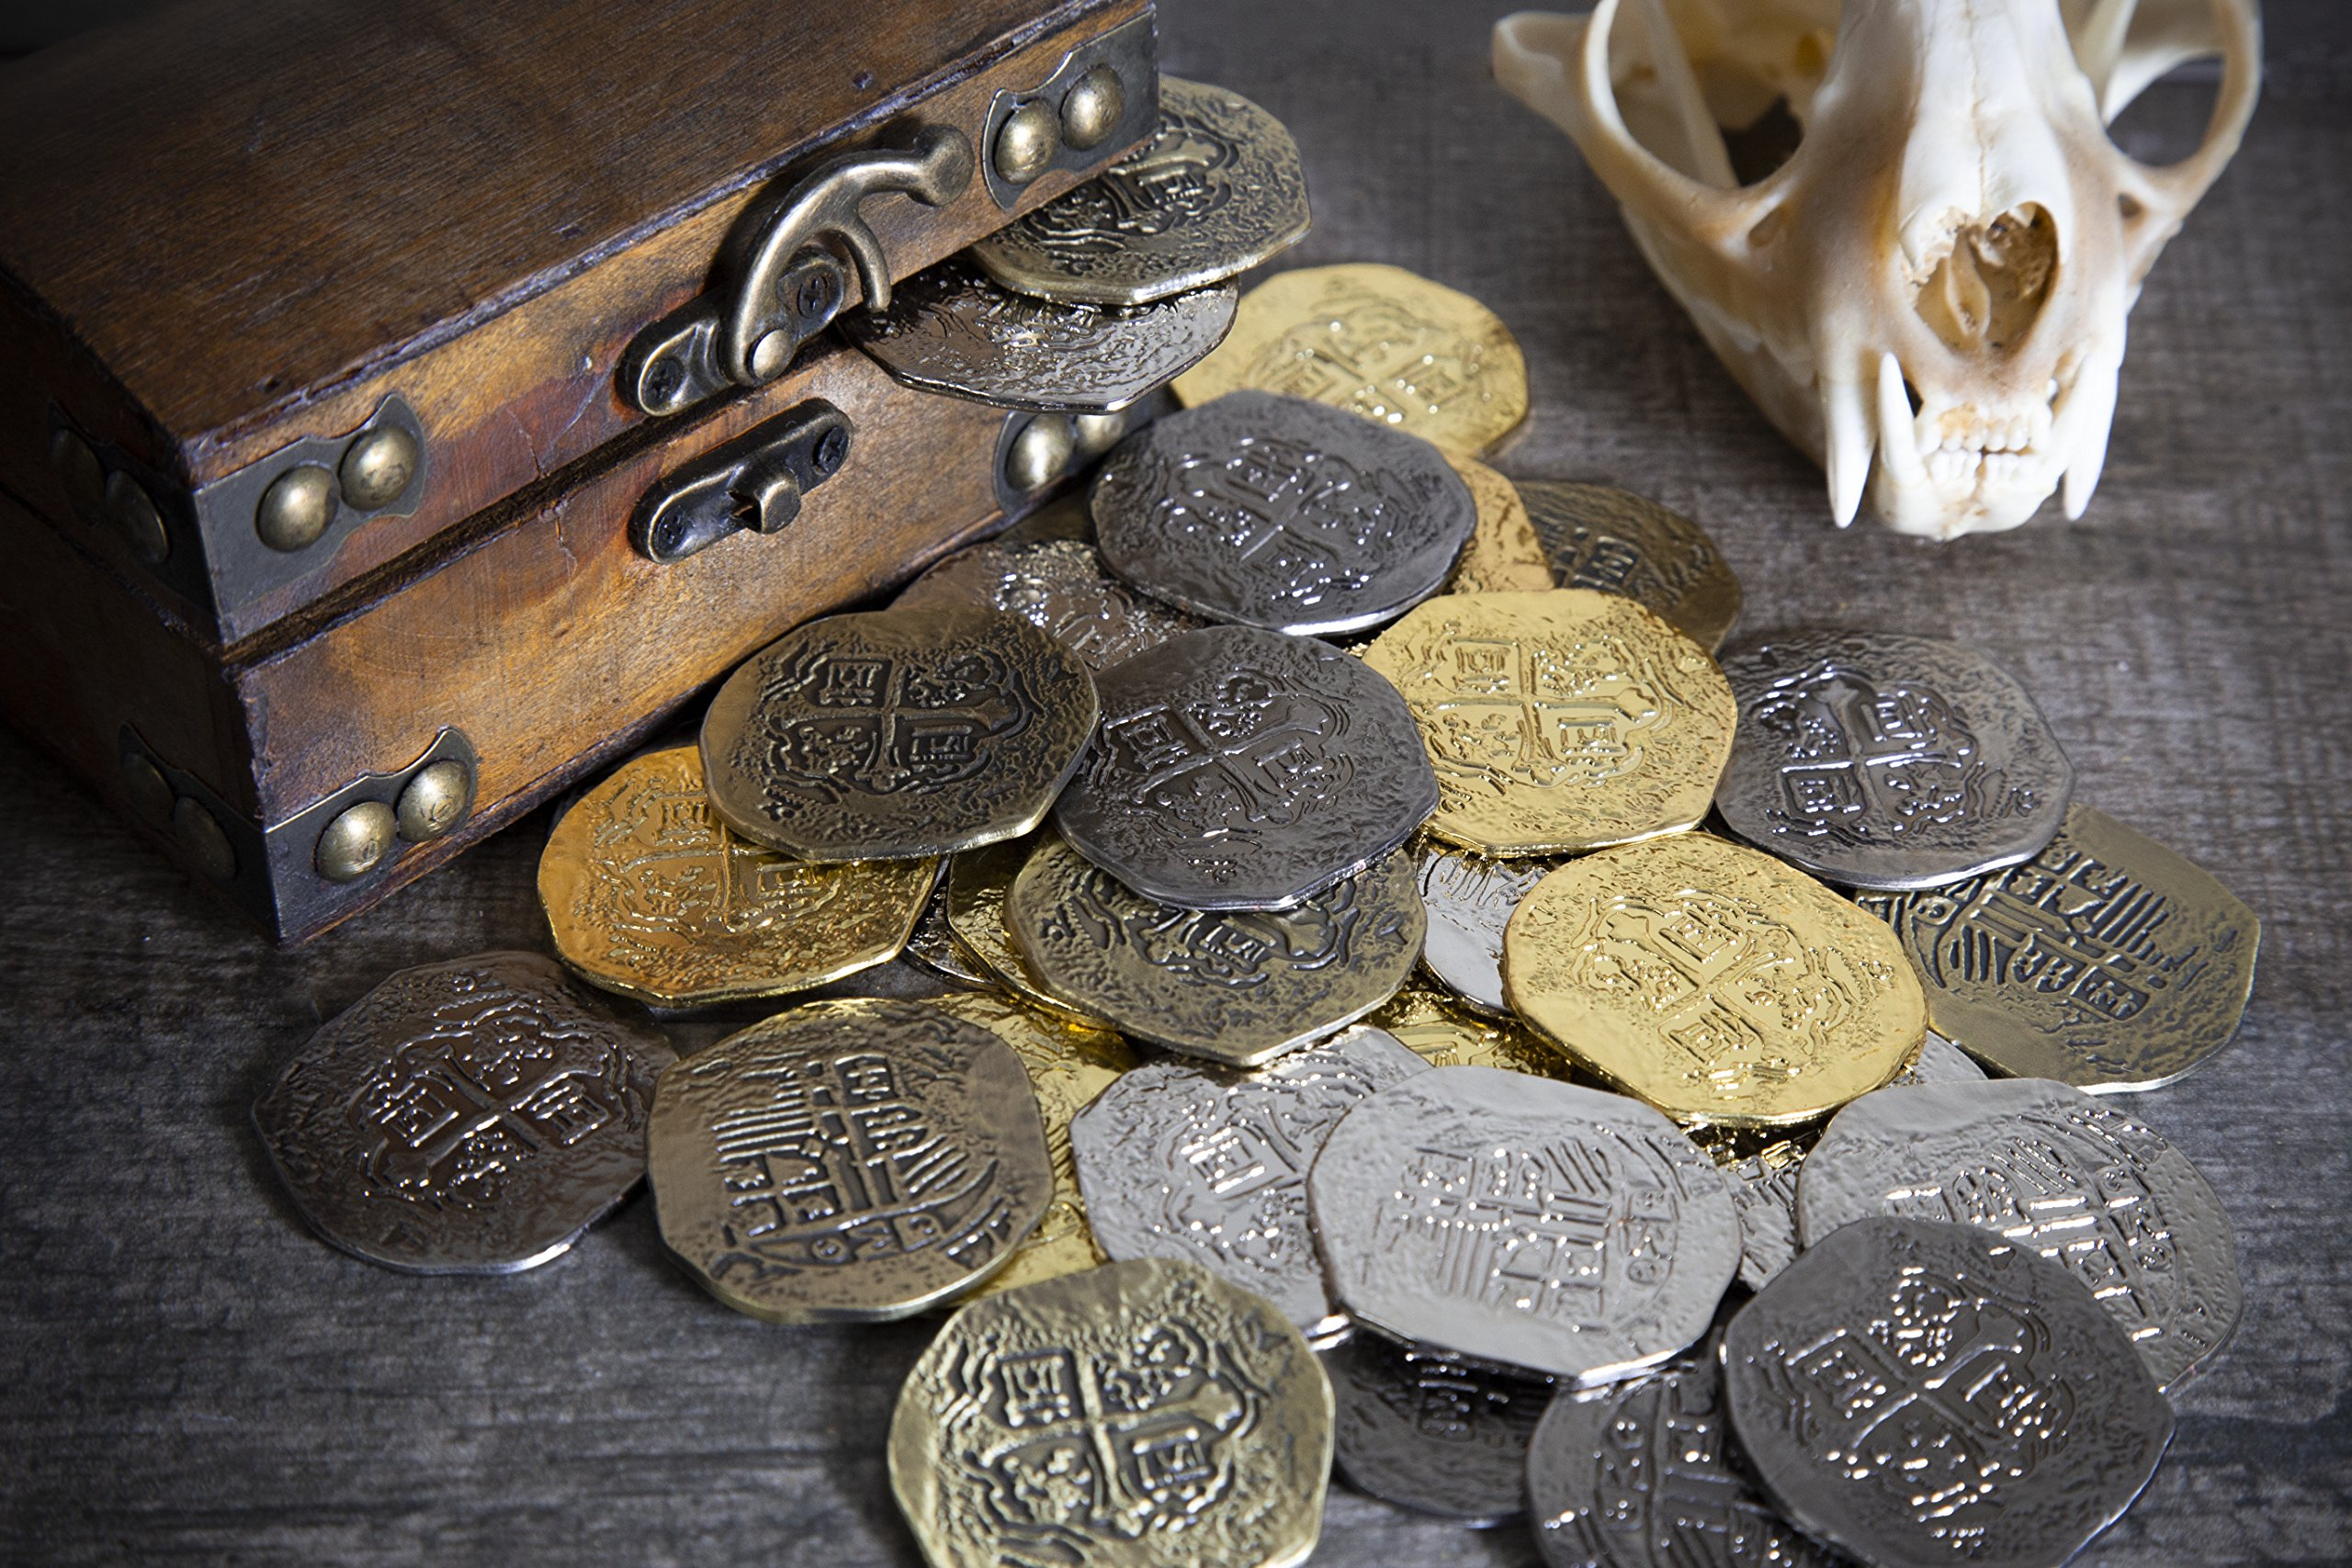 Extra Large Metal Pirate Treasure Coins - 100 Gold and Silver Doubloon Replicas - Toy Pirate Coins by Beverly Oaks (Image #3)